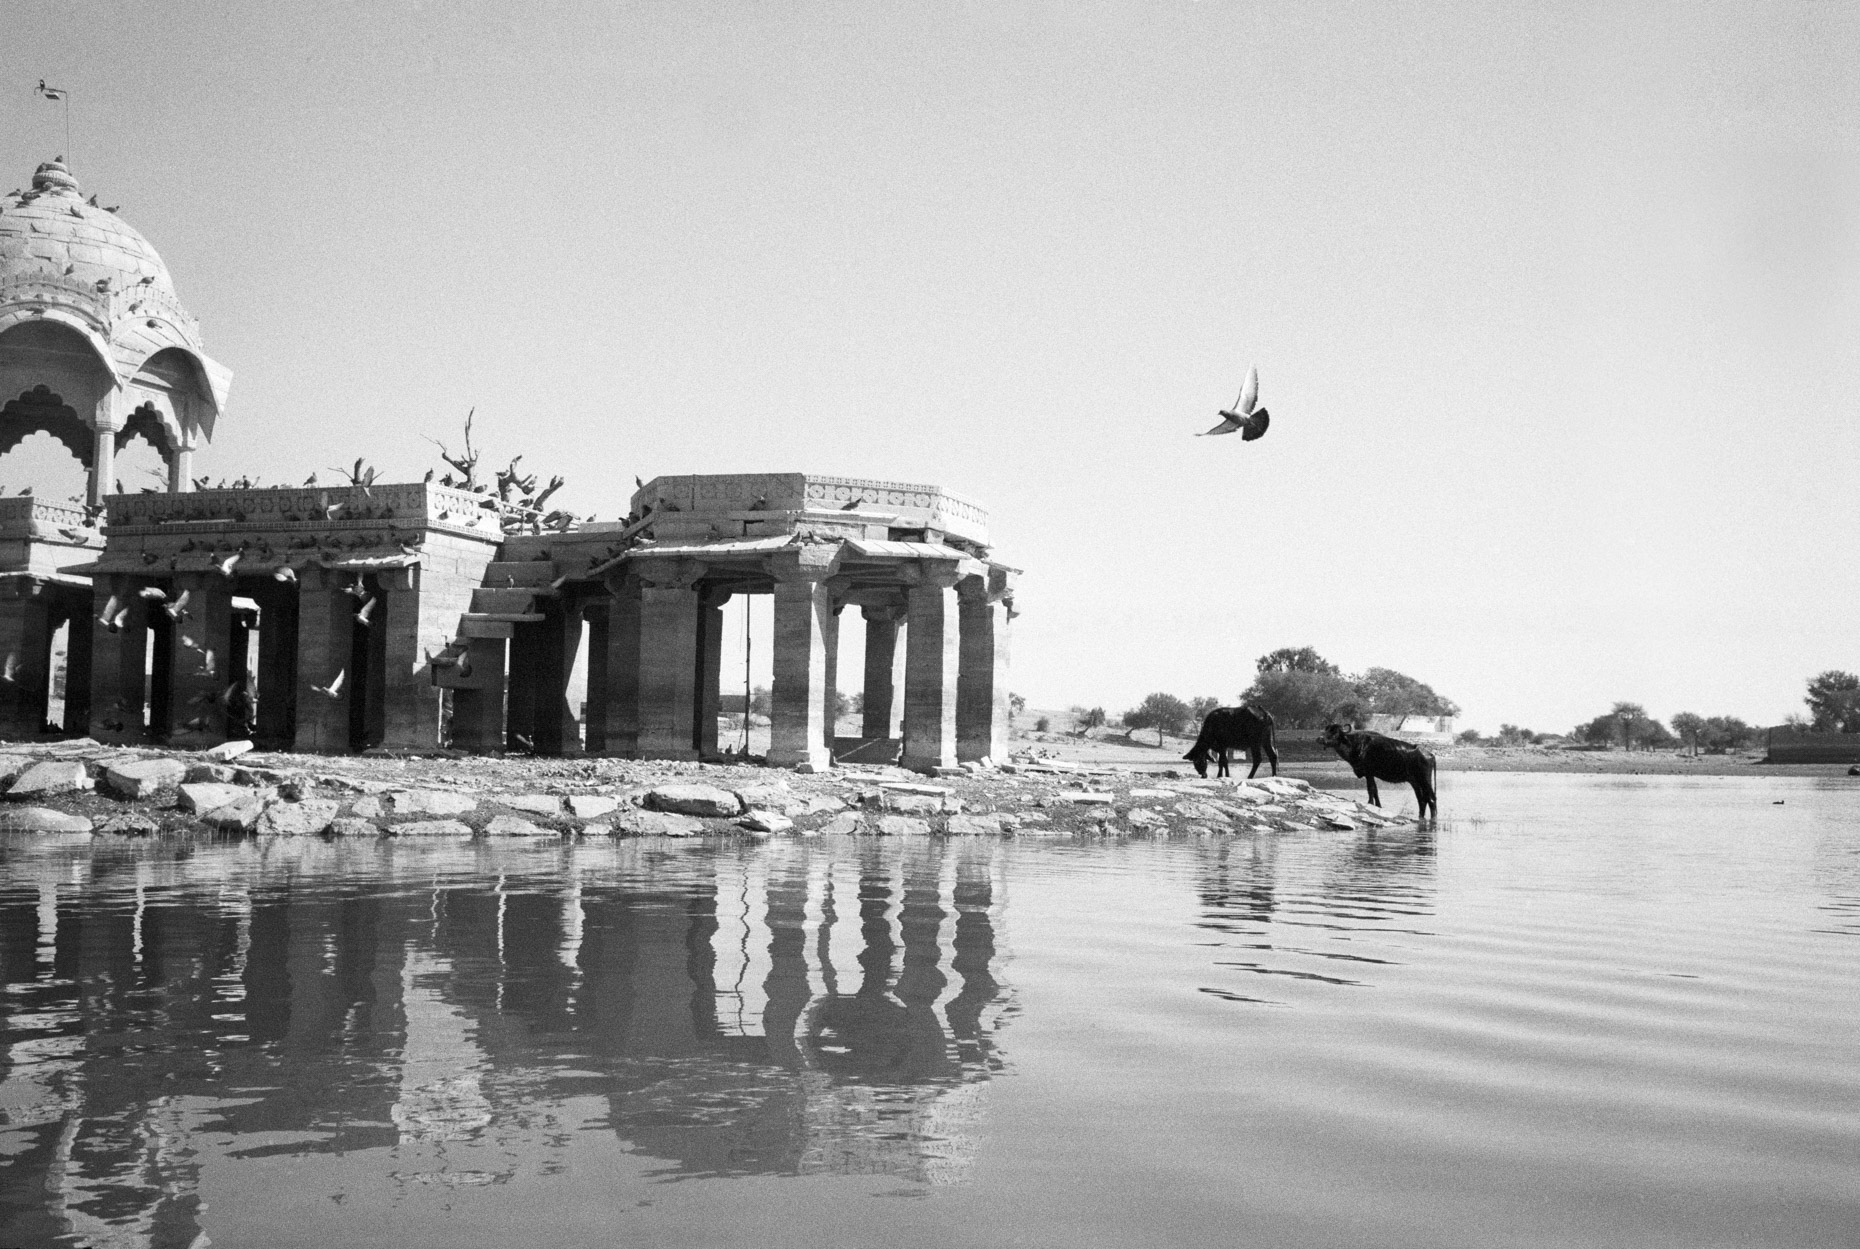 Ruined Temple with Water Buffalo, Gadi Sagar, Jaisalmer